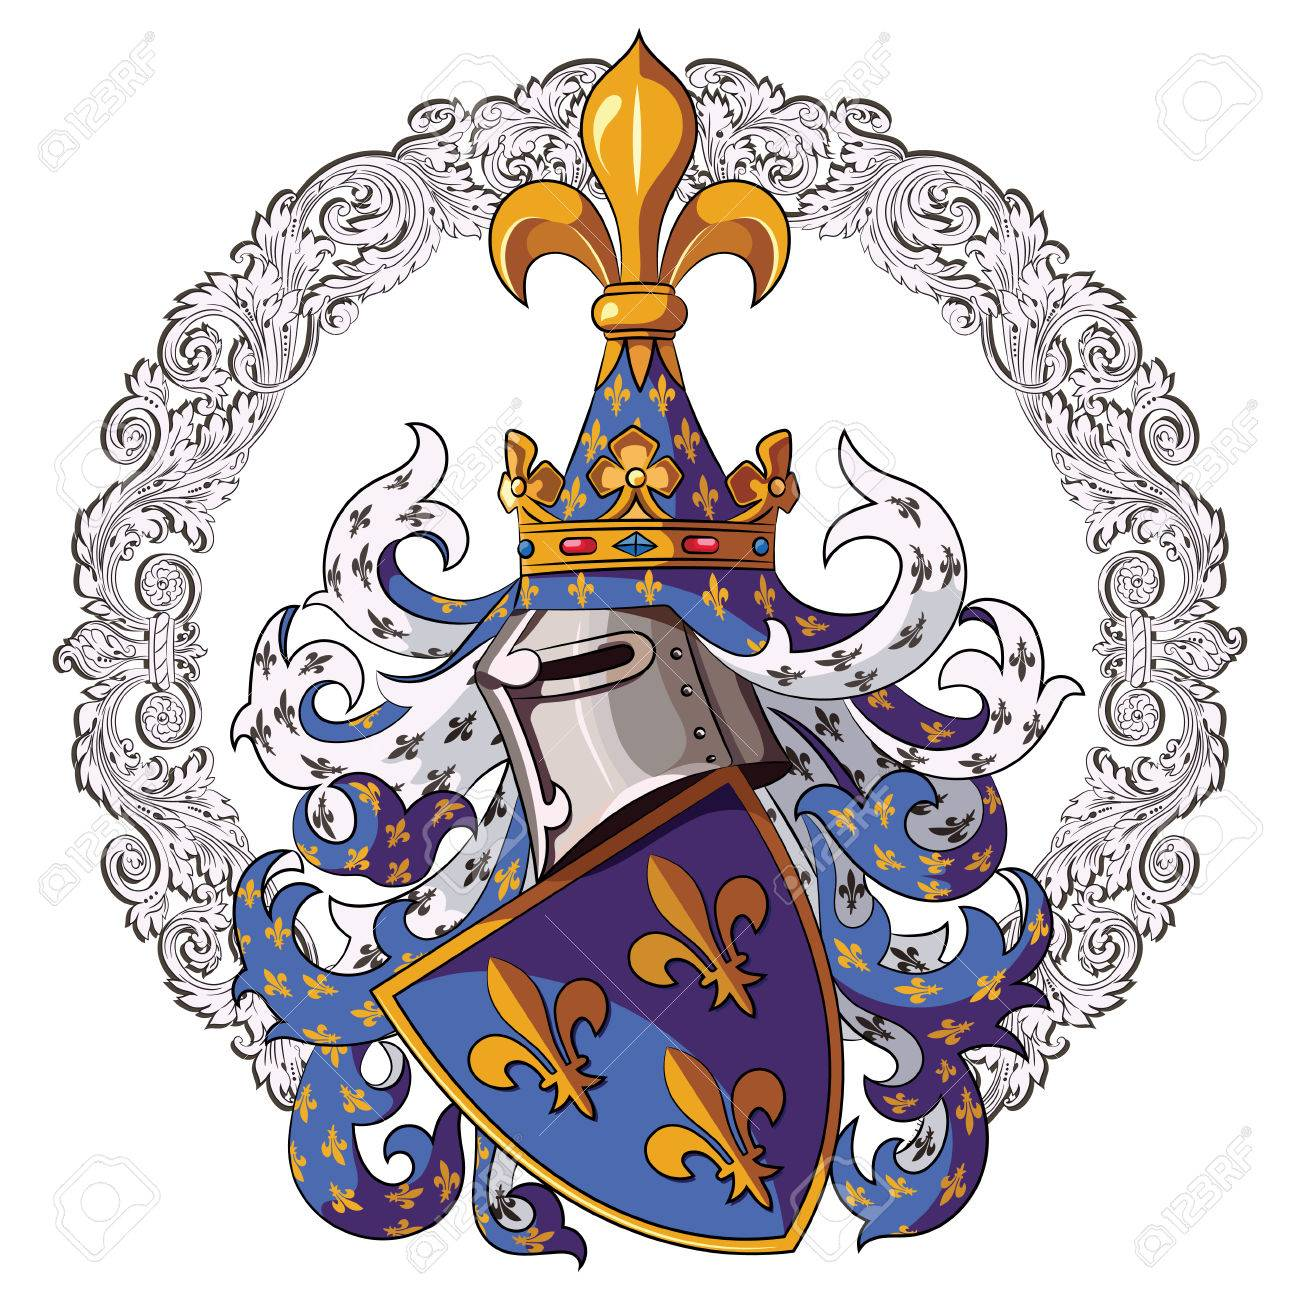 Knightly coat of arms medieval knight heraldry and medieval medieval knight heraldry and medieval knight ornament vector illustration biocorpaavc Choice Image